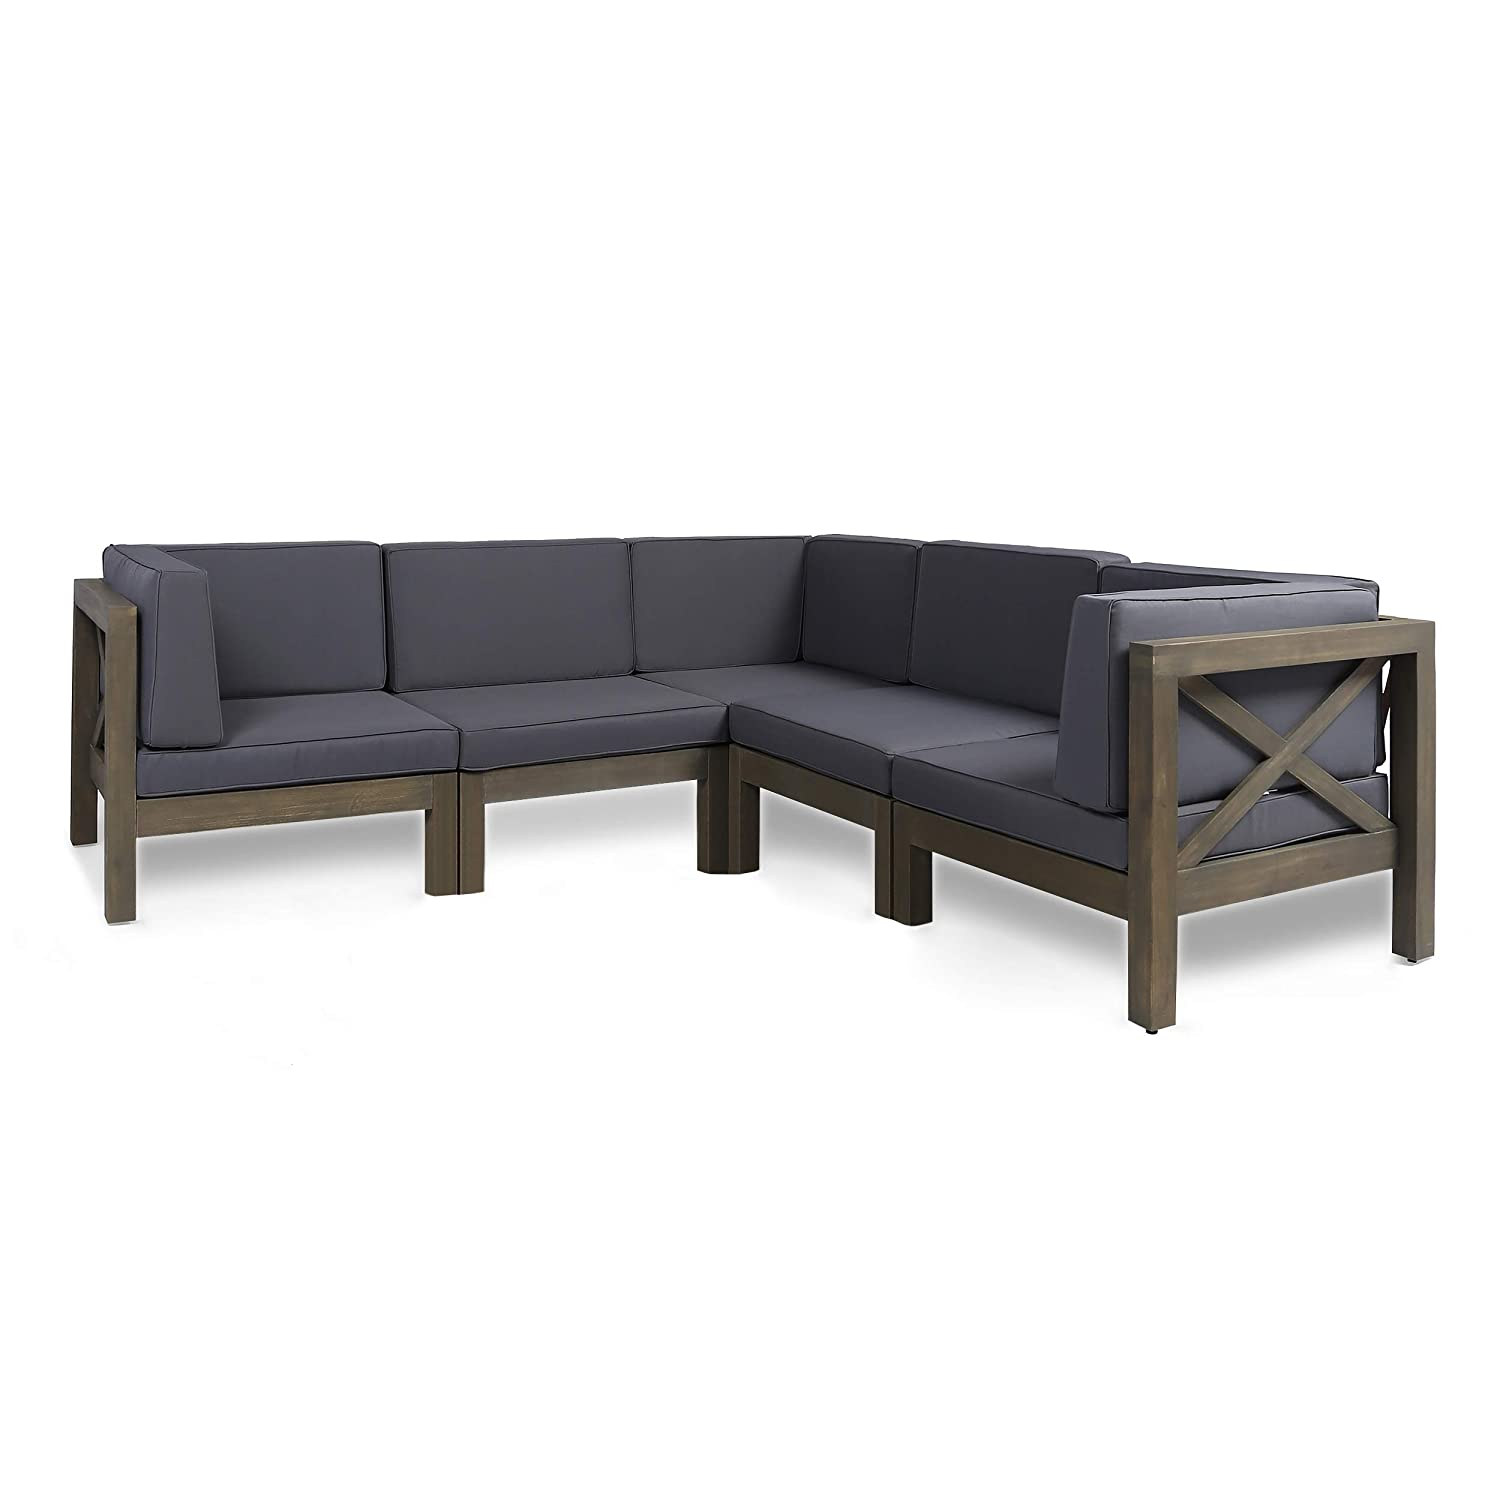 Great Deal Furniture Keith Outdoor Sectional Sofa Set | 5-Piece 5-Seater | Acacia Wood | Water-Resistant Cushions | Gray and Dark Gray